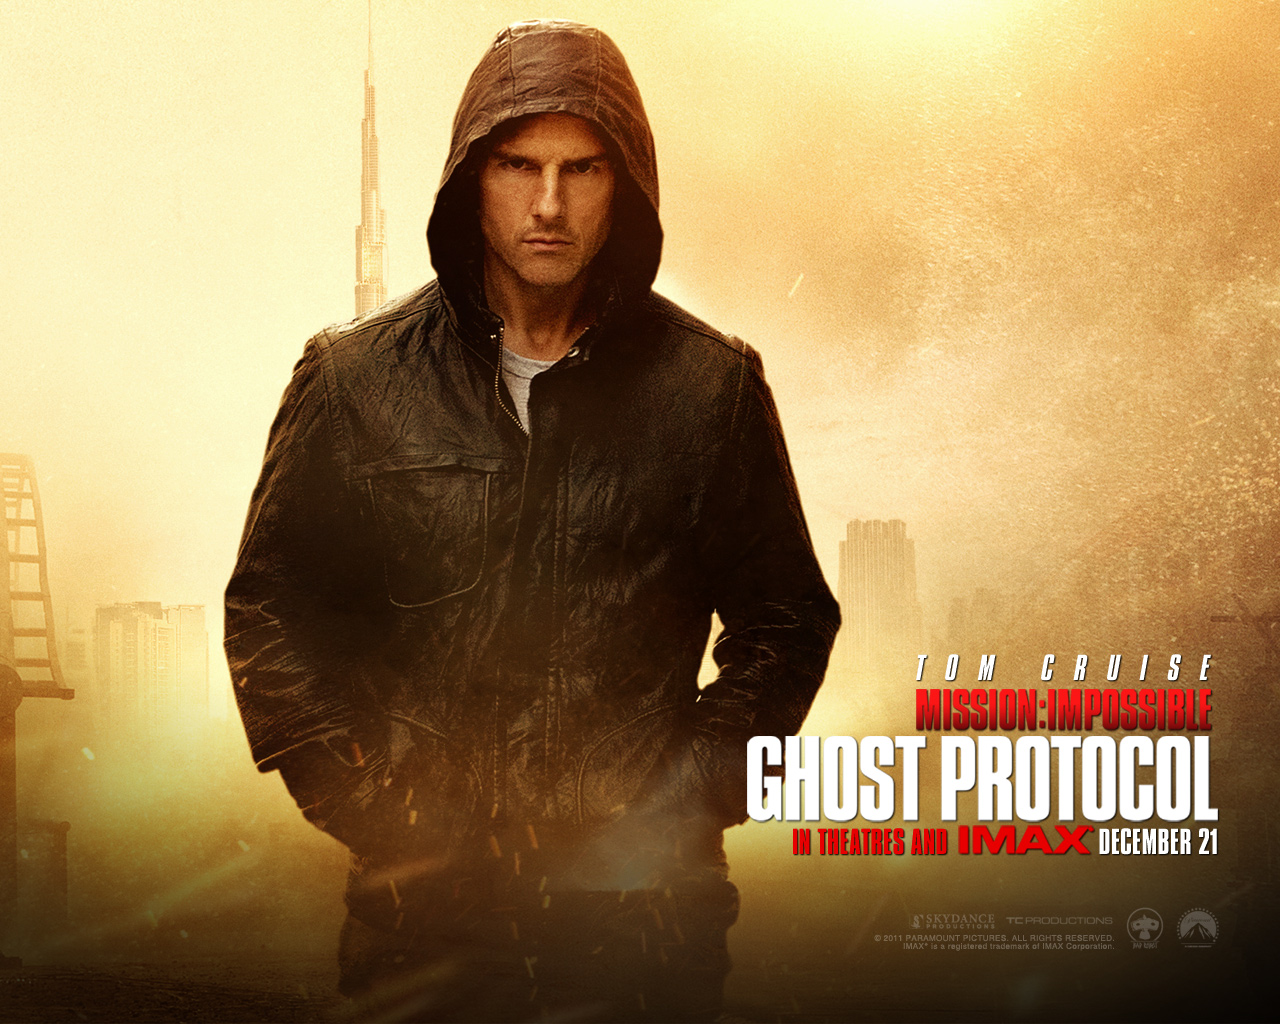 Tom Cruise Wallpaper Theme With Backgrounds 1280x1024 1280x1024